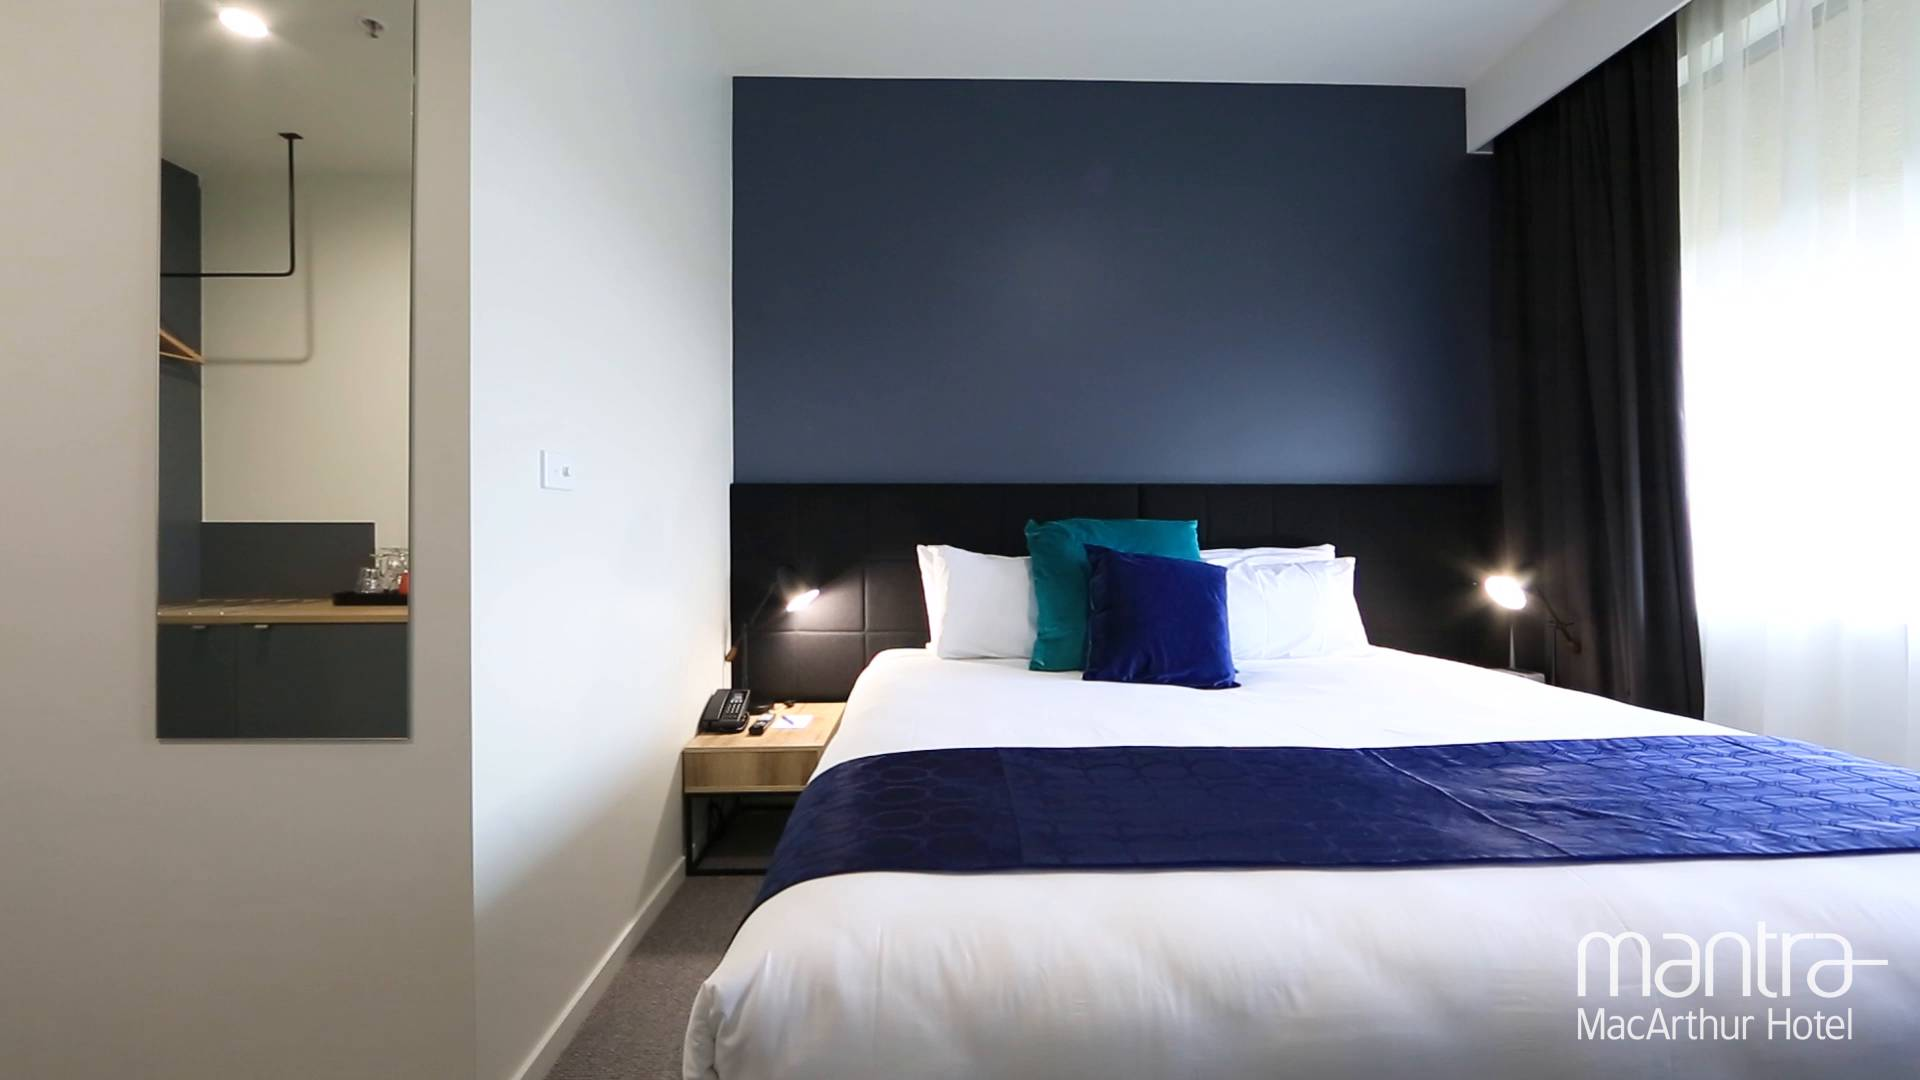 2 Bedroom Accommodation Canberra Mantra Macarthur Hotel Studio